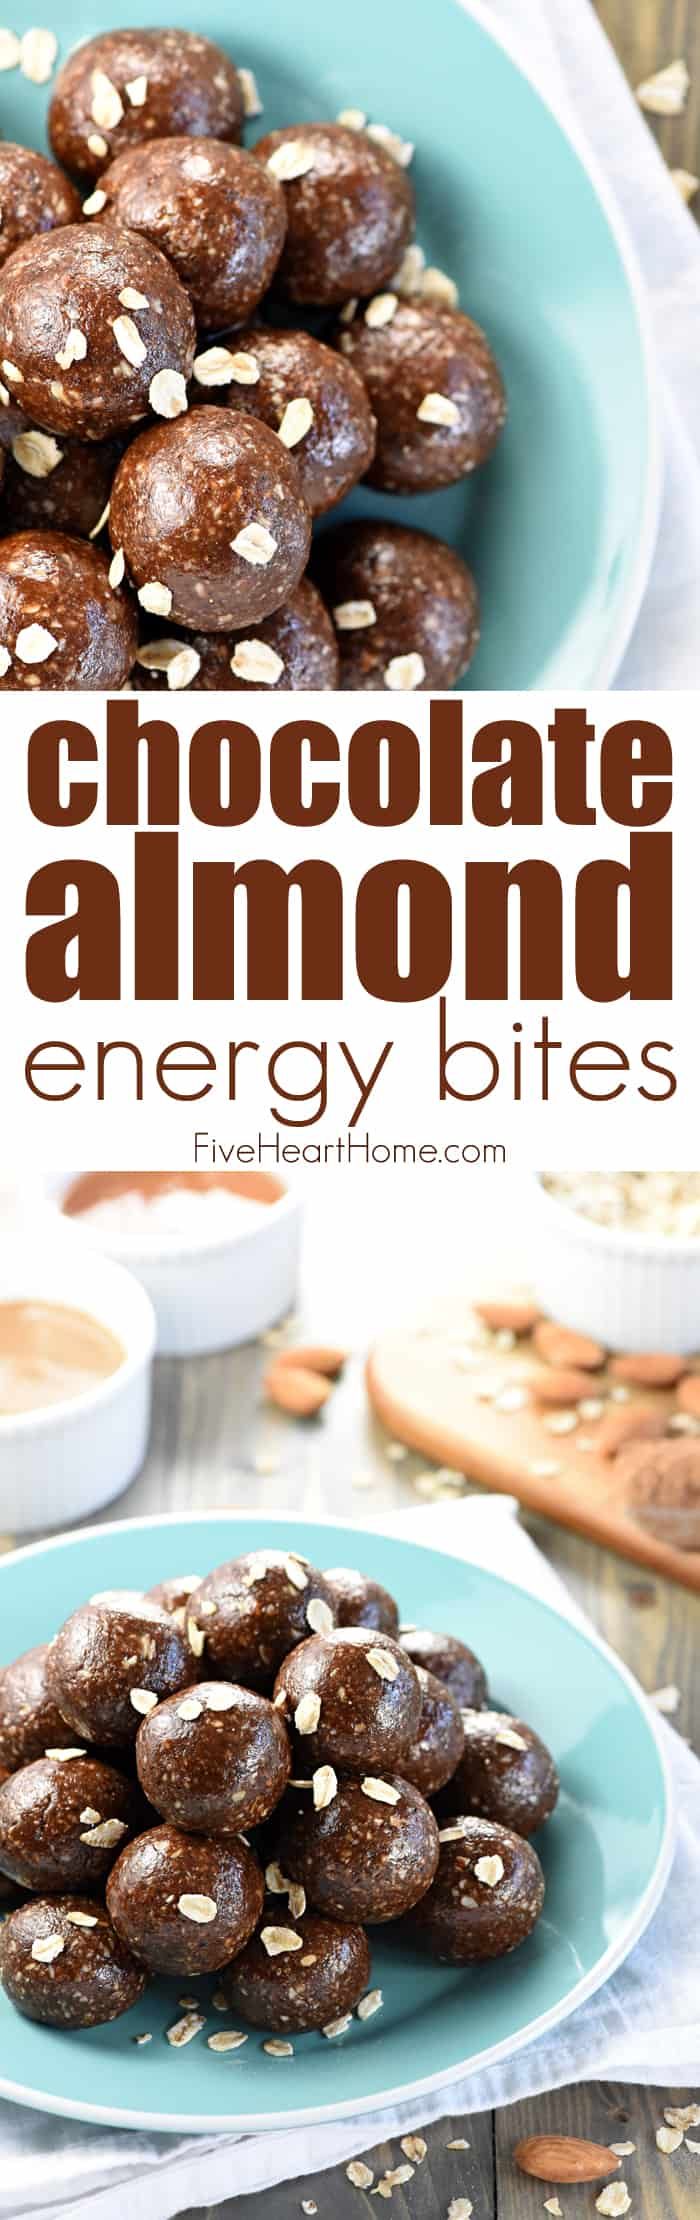 Chocolate Almond Energy Bites Collage and Text Overlay